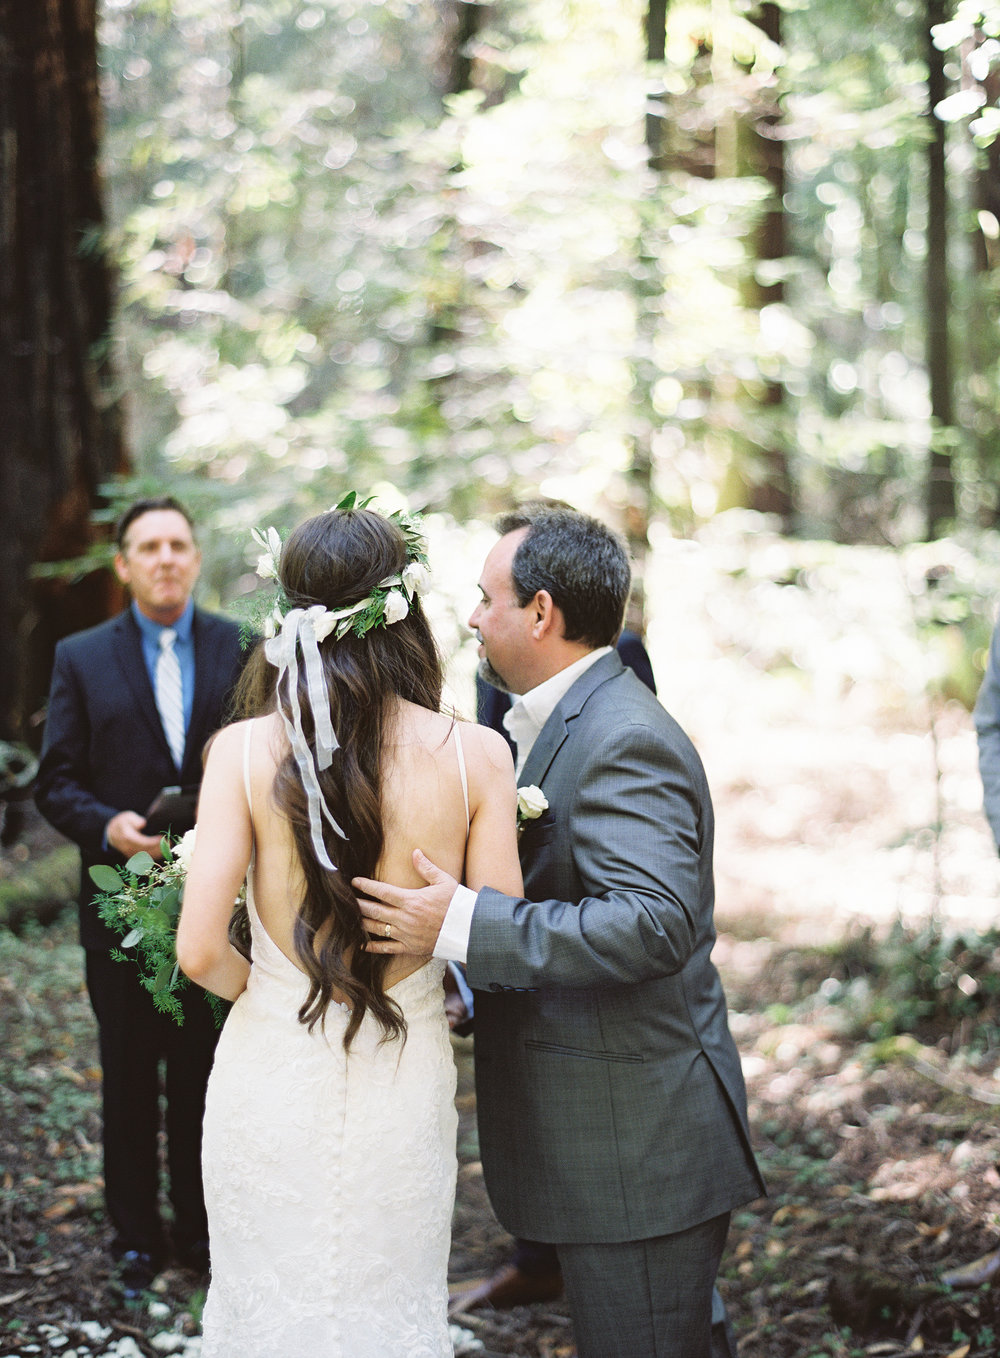 Meghan Mehan Photography | California Wedding Photographer | Napa California Wedding Photographer 072.jpg